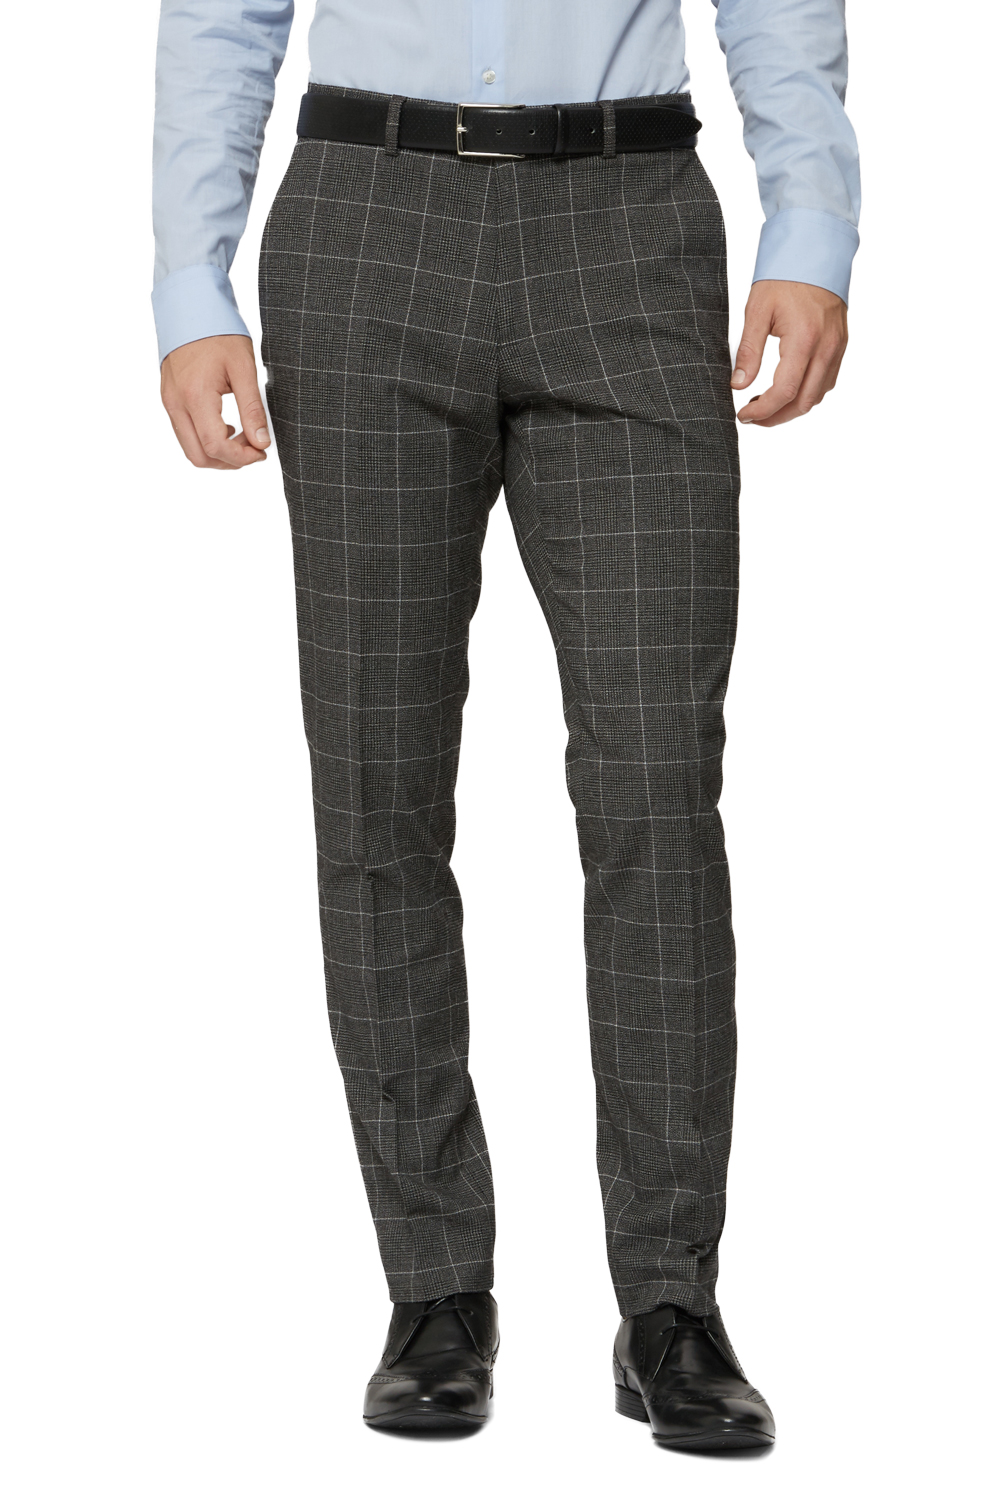 Moss Bros Mens Charcoal Grey Suit Trousers Check Skinny Fit Formal Pants | EBay